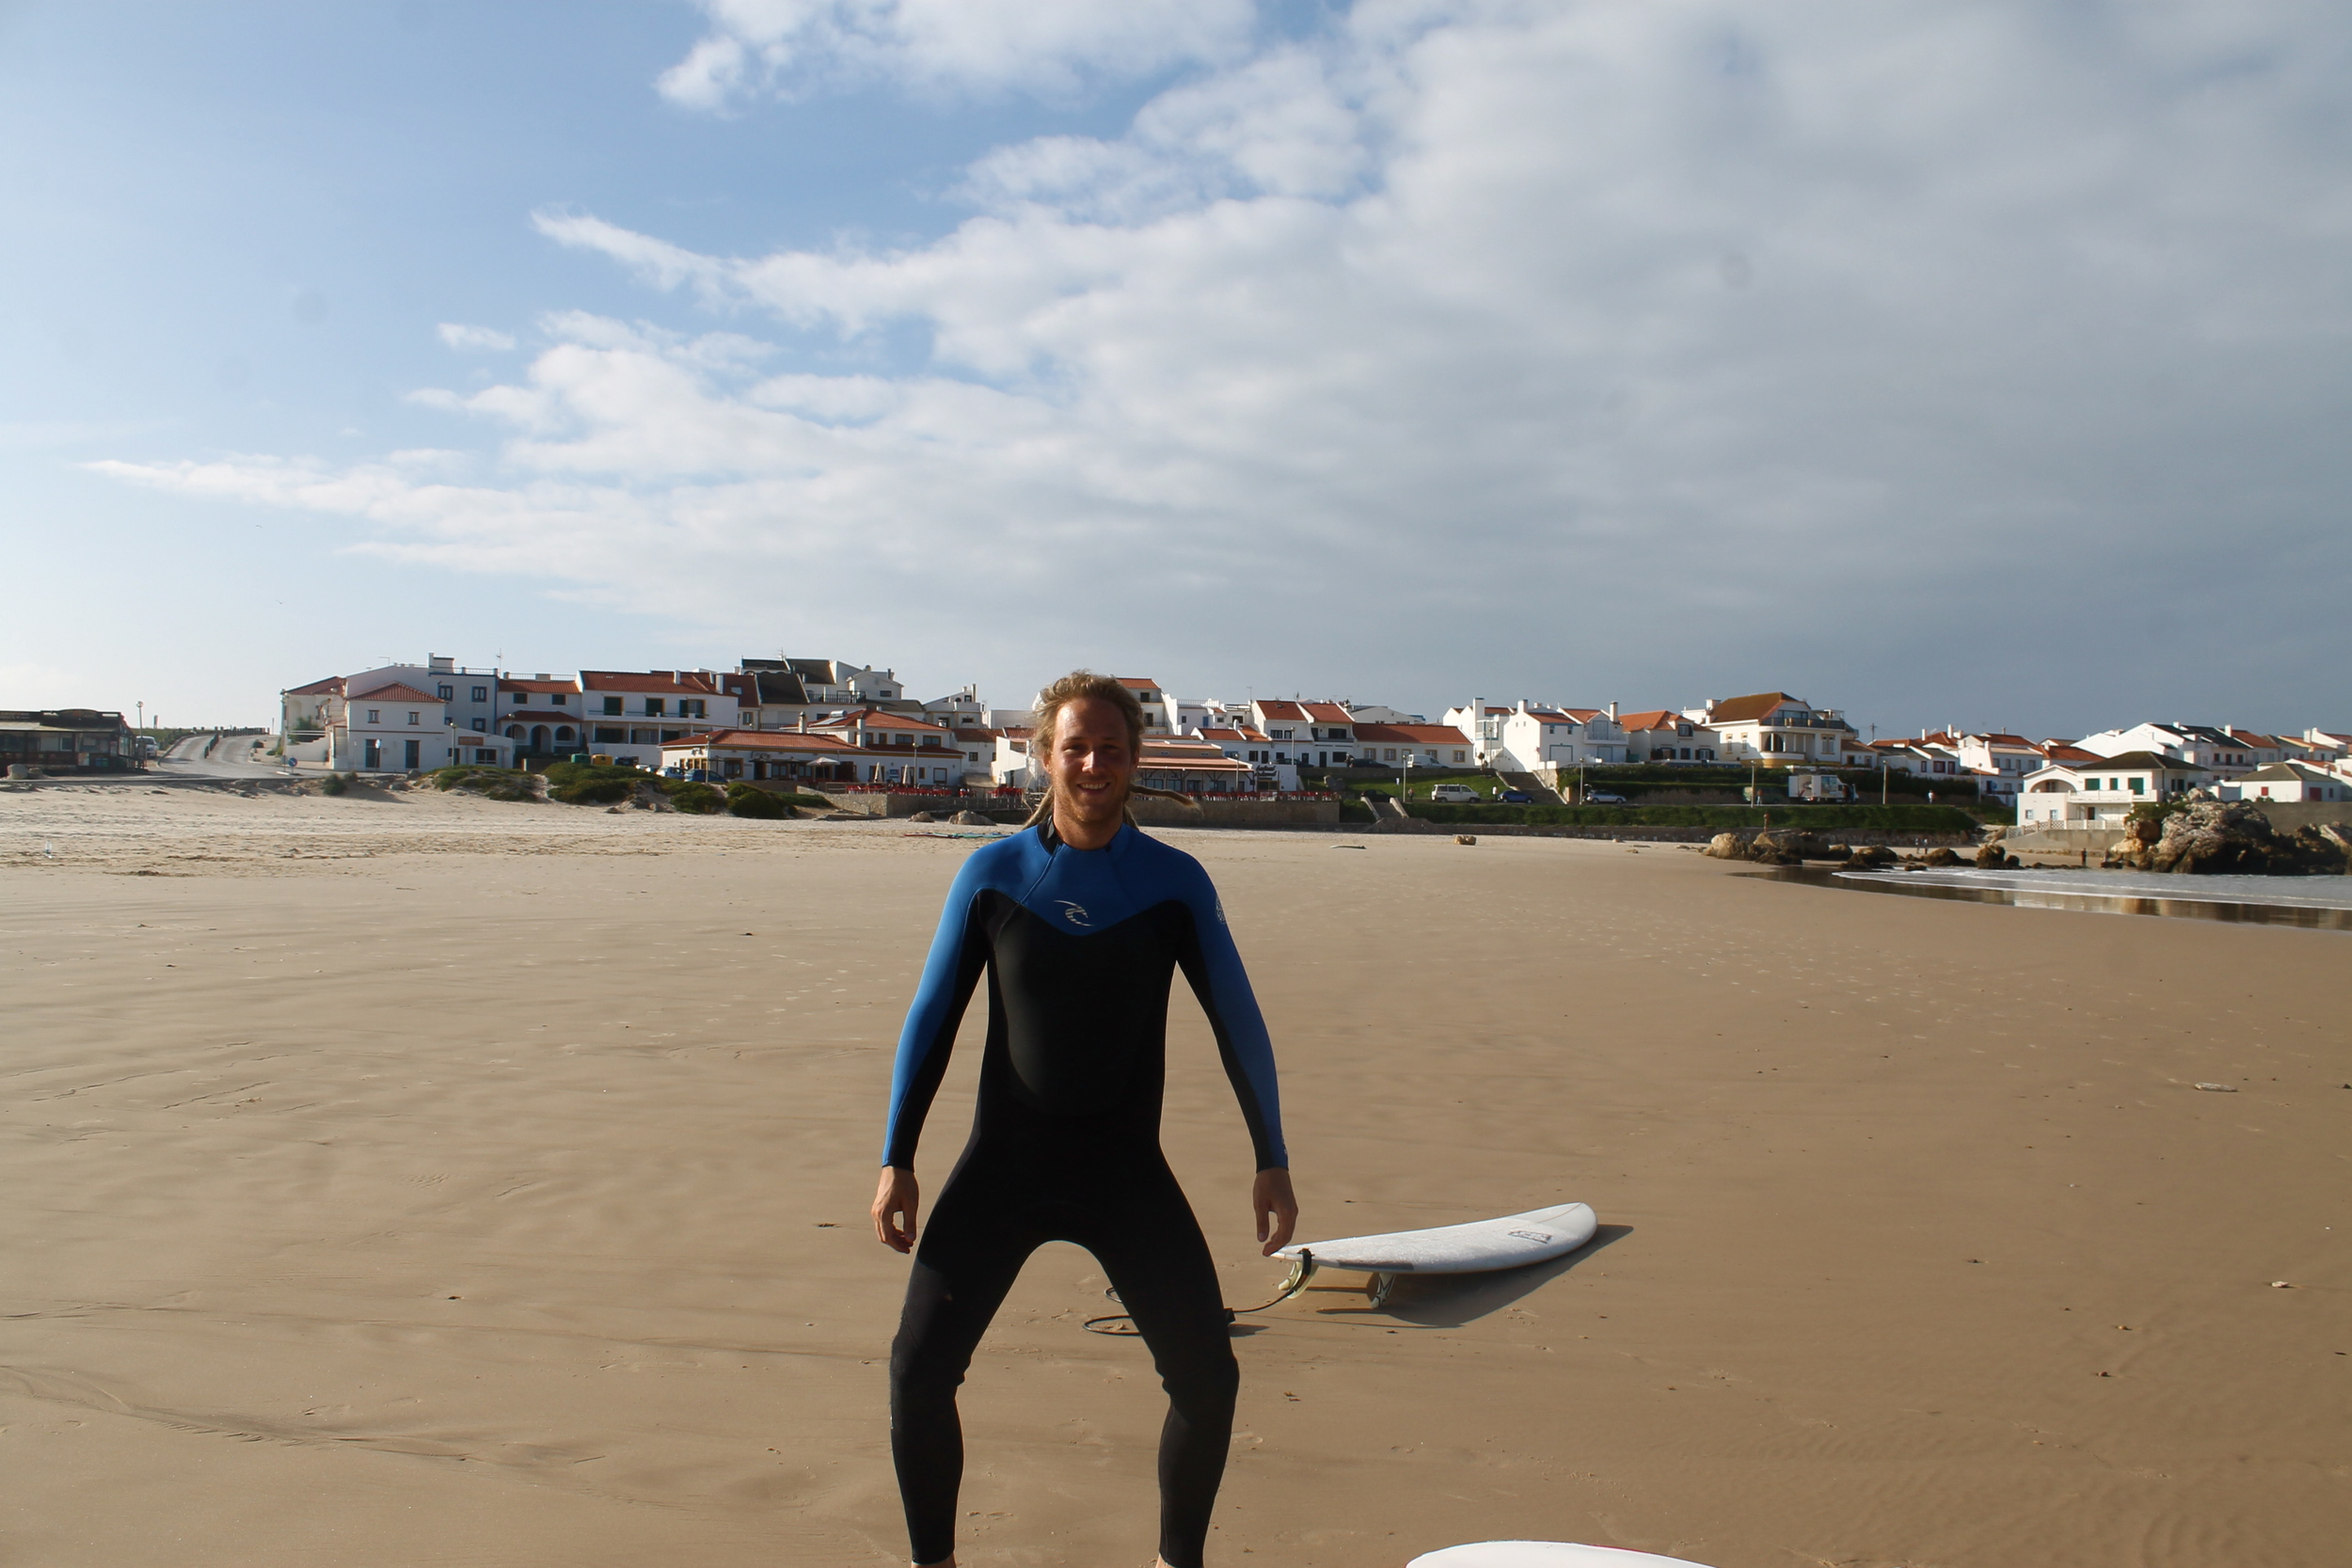 Danielthe Swede, whose love of surfing is only rivaled by his love of desserts.